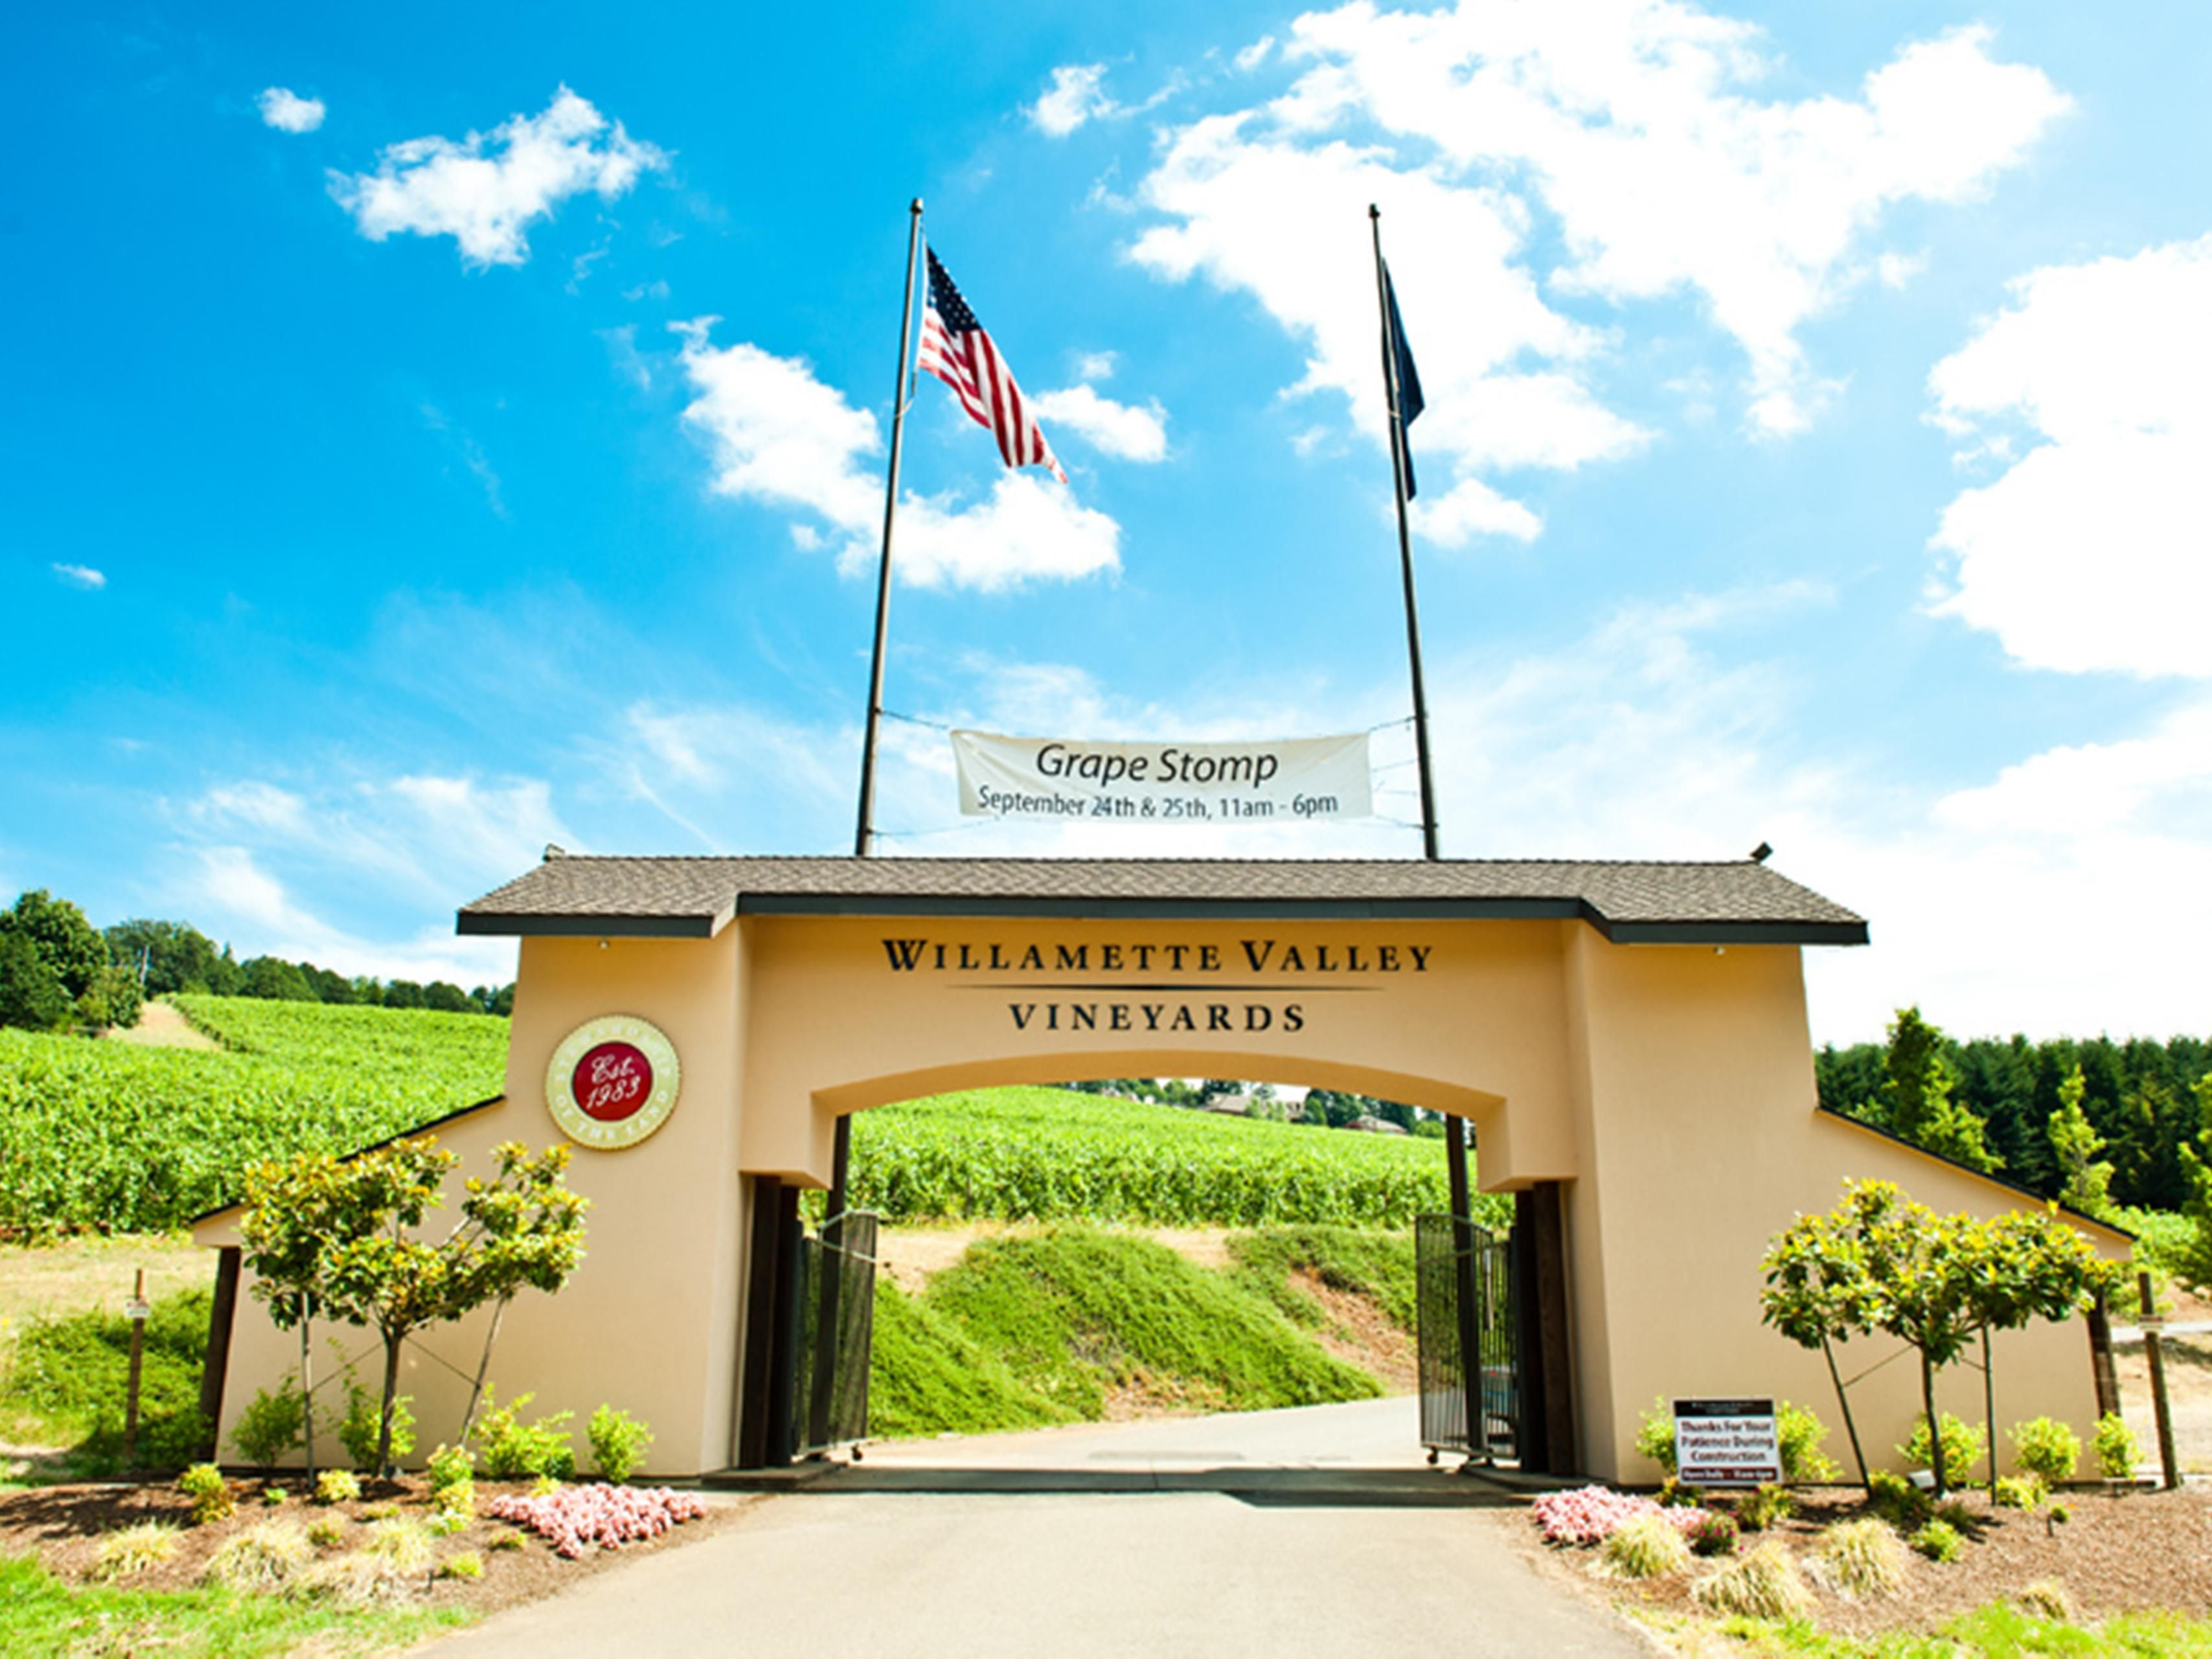 Willamette Valley Vineyards quick a 20minute drive from the hotel